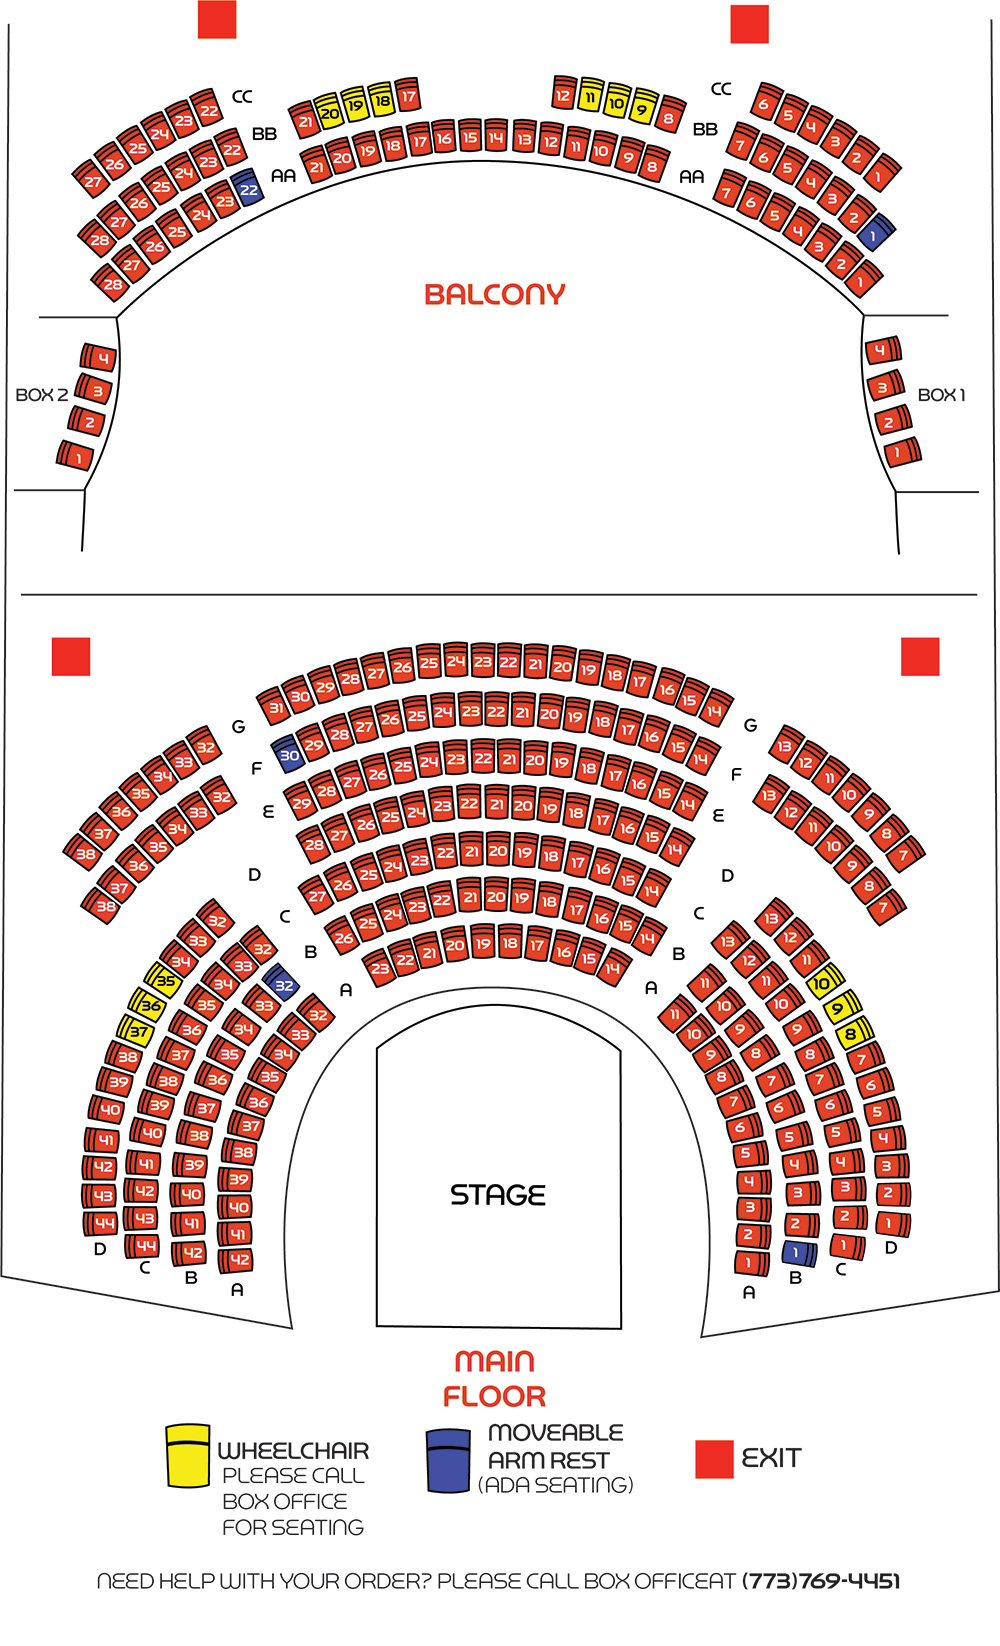 Black seating chart clipart png black and white download Seating Chart - Black Ensemble Theater png black and white download